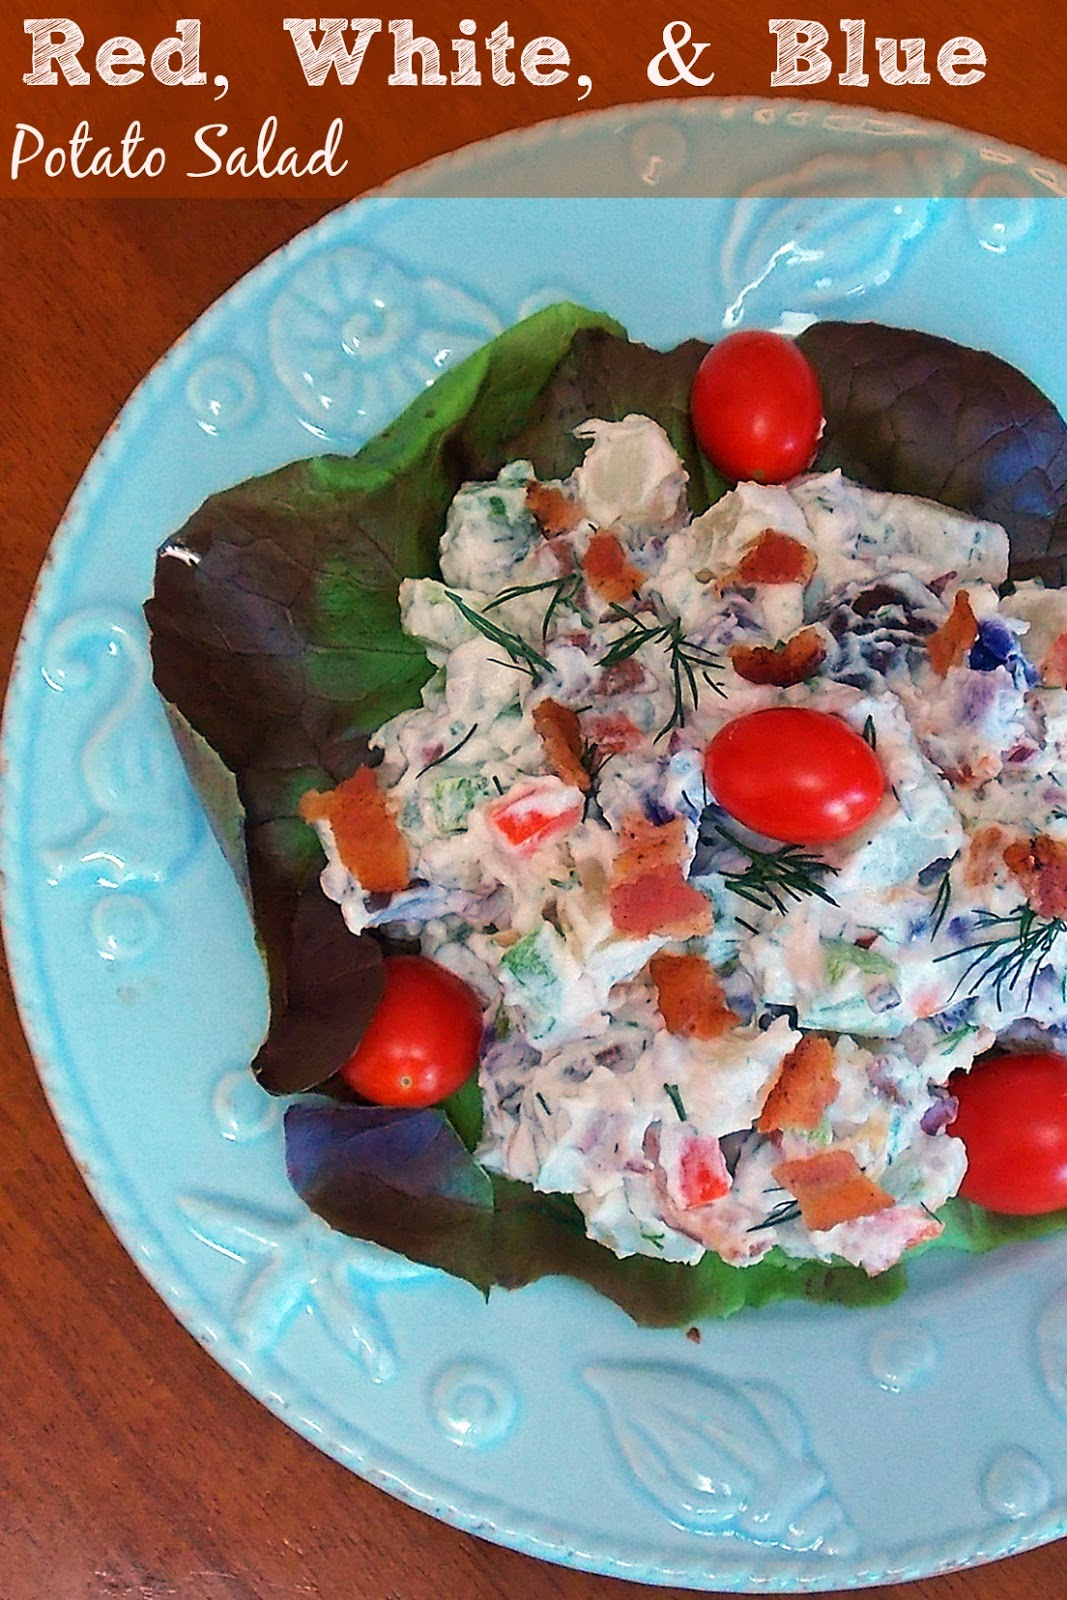 Red, White, & Blue Potato Salad #bacon #dill #salad